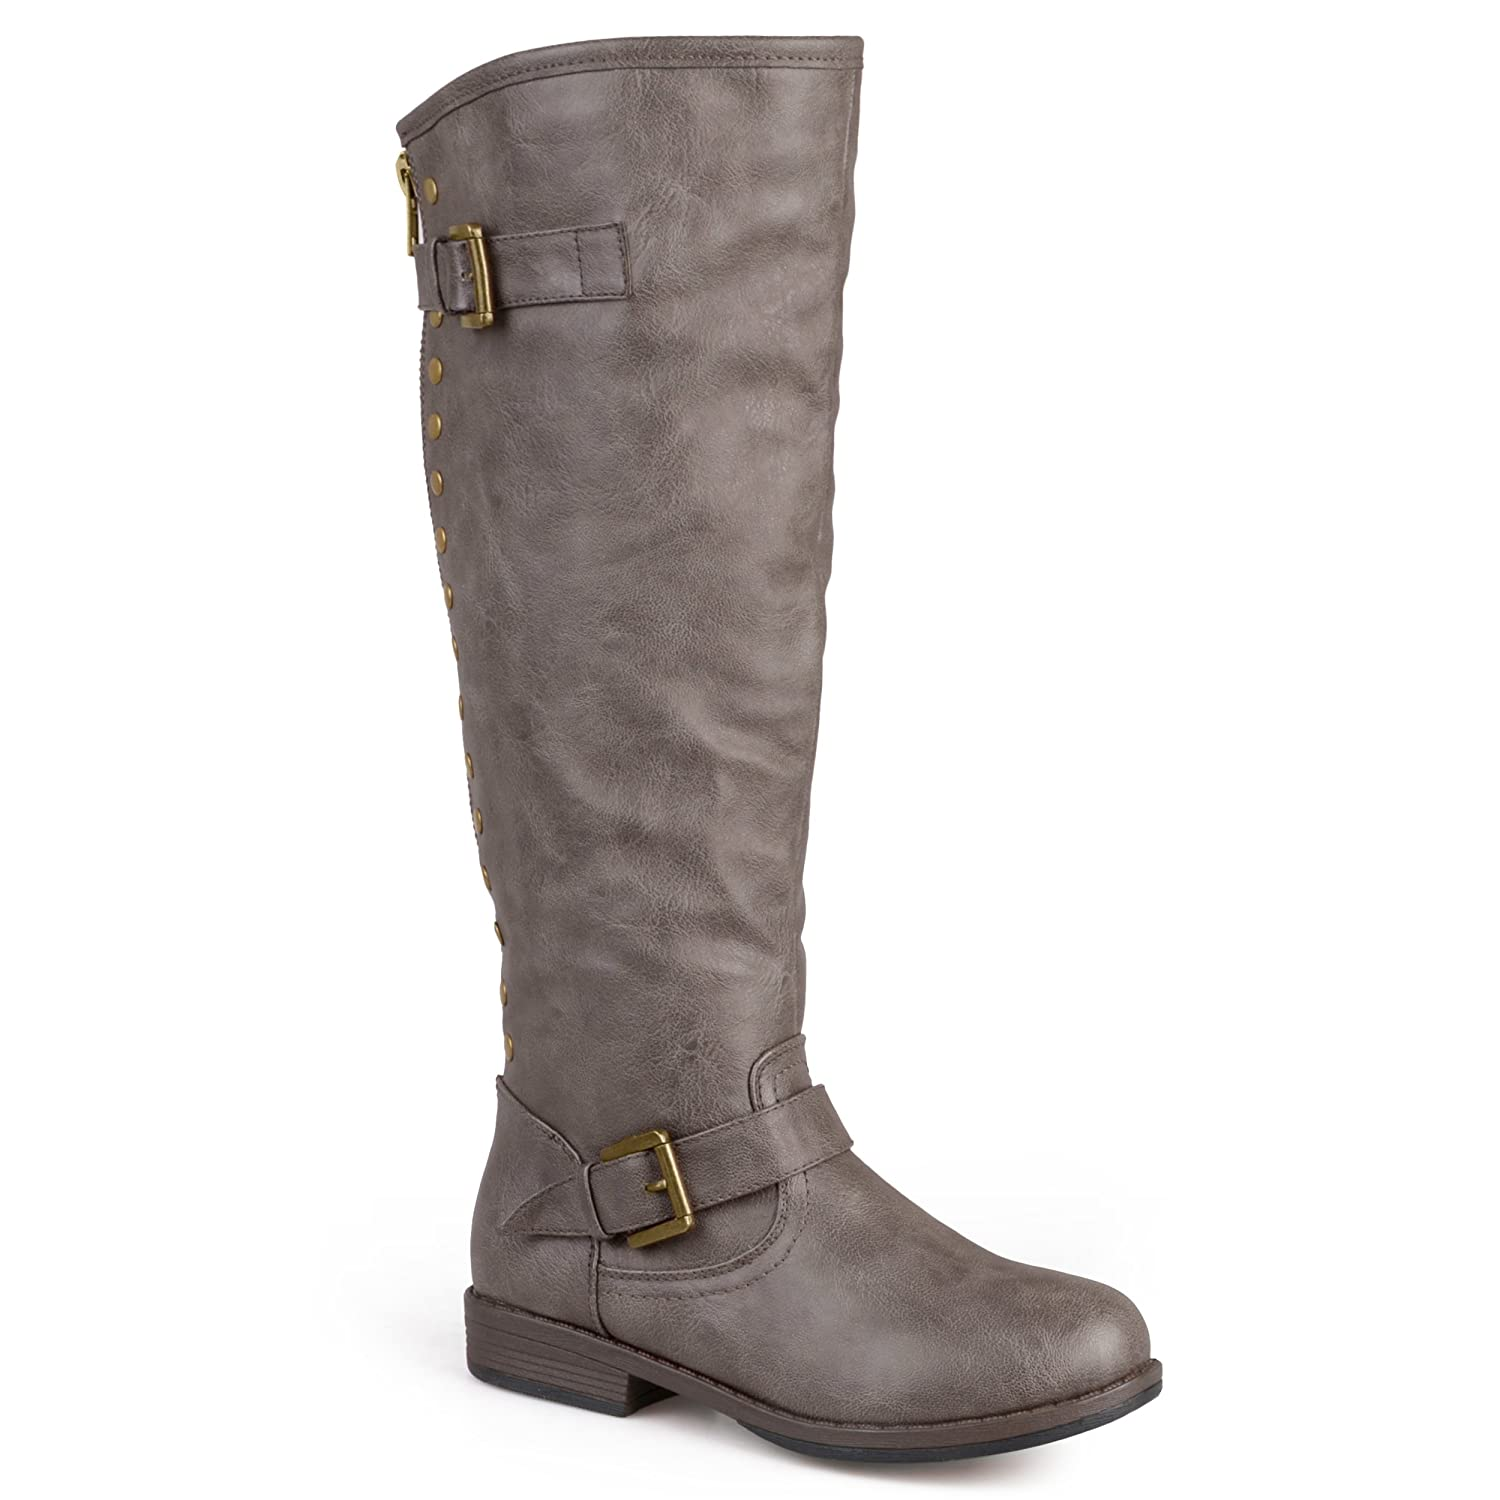 Journee Collection Womens Regular Sized, Wide-Calf and Extra Wide-Calf Studded Knee-High Riding Boot Durango-wc